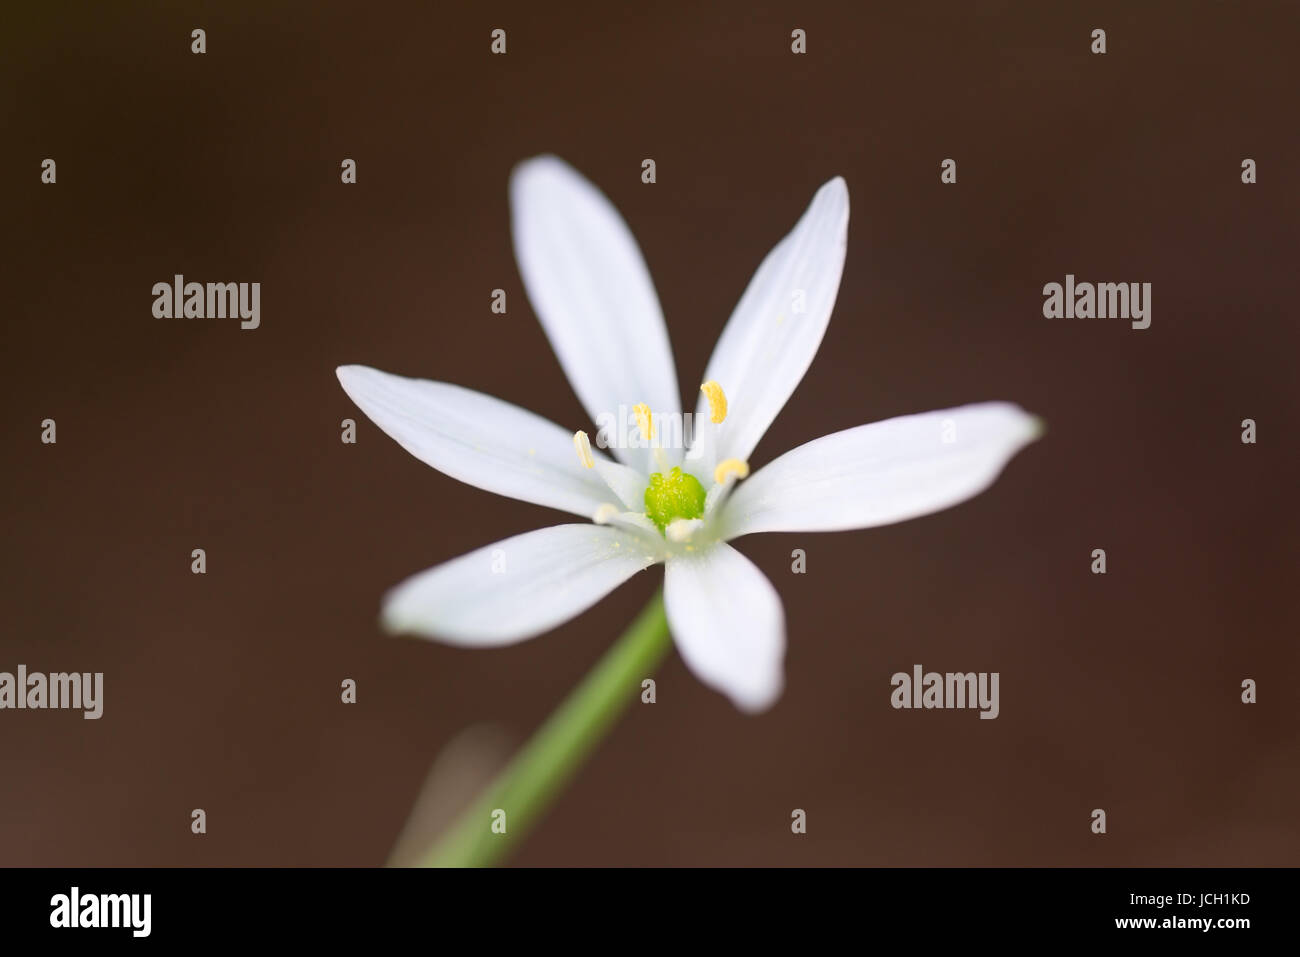 A Single White Flower With Six Petals Star Of Bethlehem Stock Photo